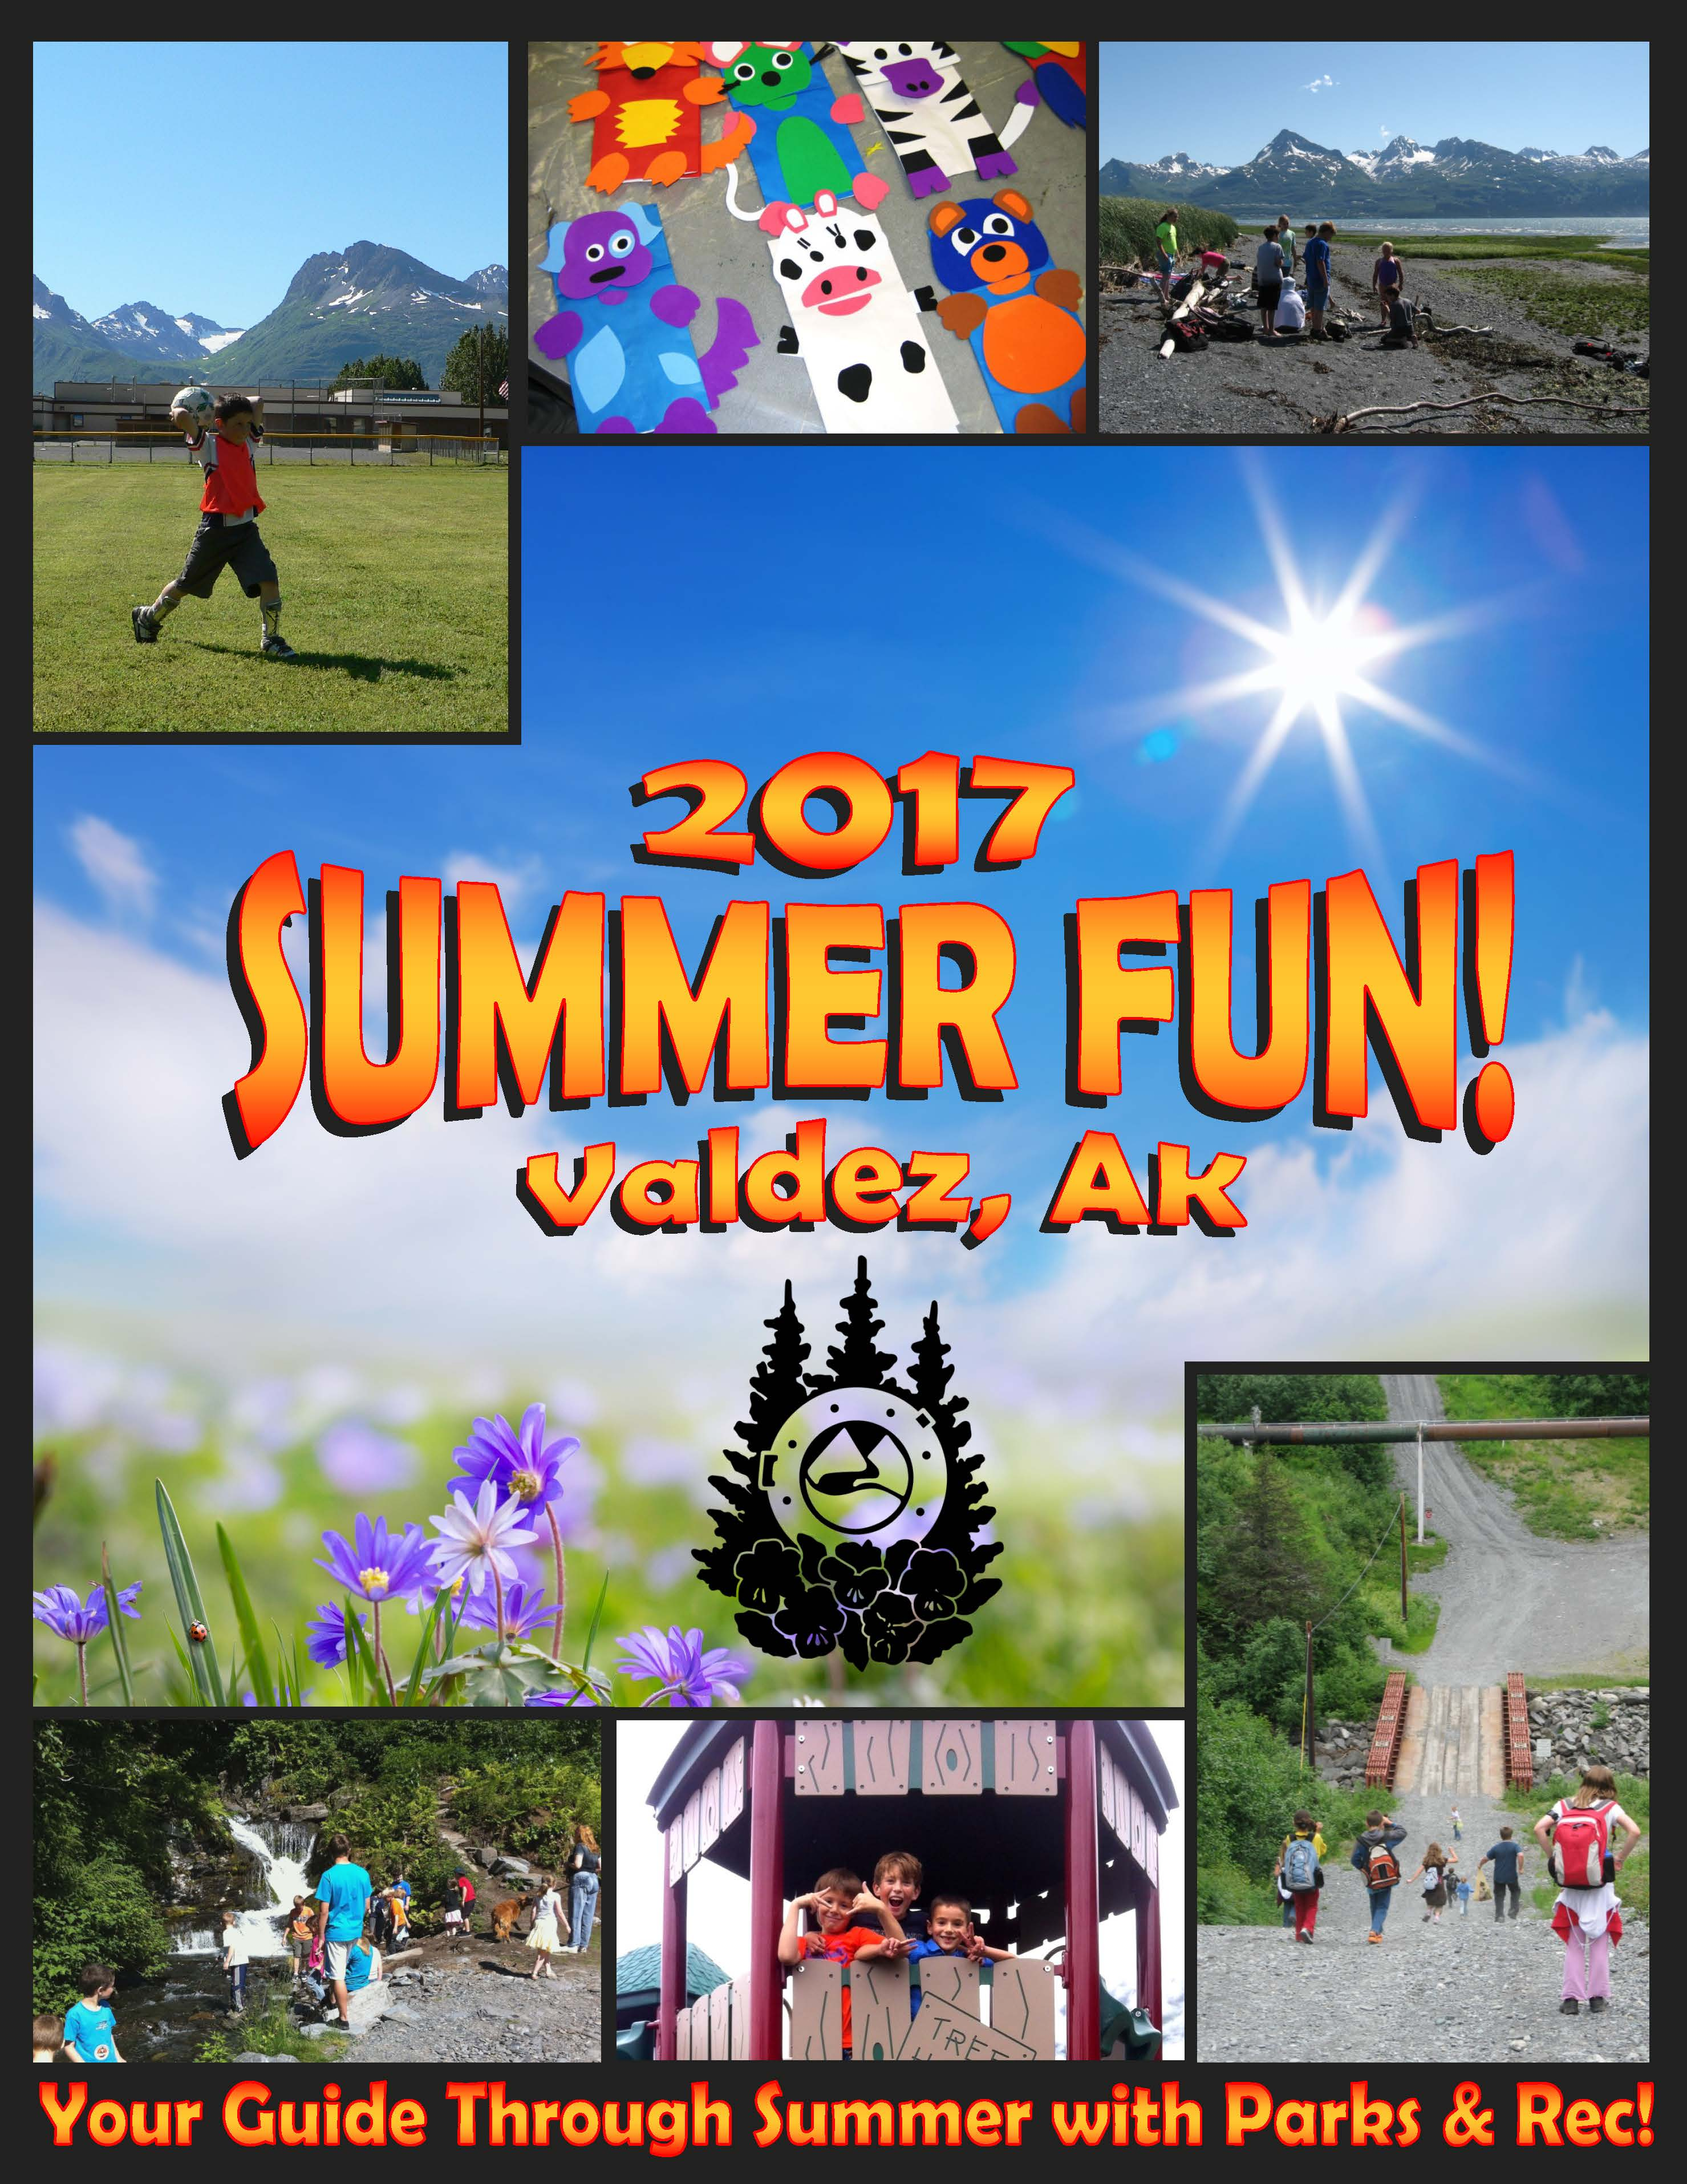 2017 Summer Fun Cover_Page_1.jpg